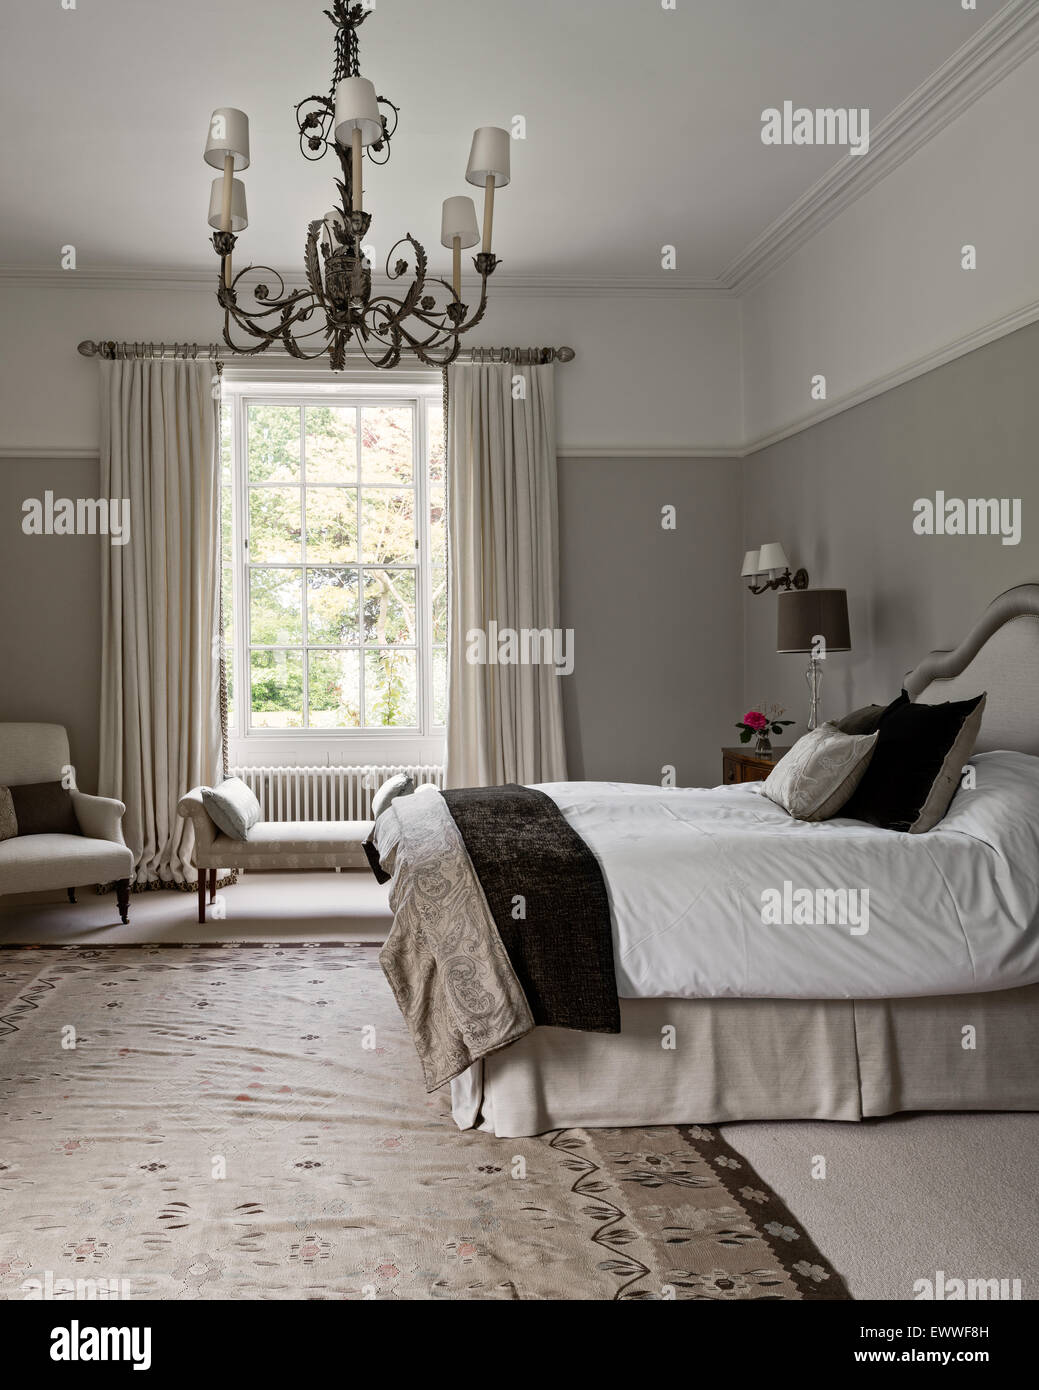 Beau Elegant Bedroom Painted In Pale Walnut By Dulux With An Aubusson Rug. The  Curtains Are In Abbot And Boydu0027s Lins Brodes